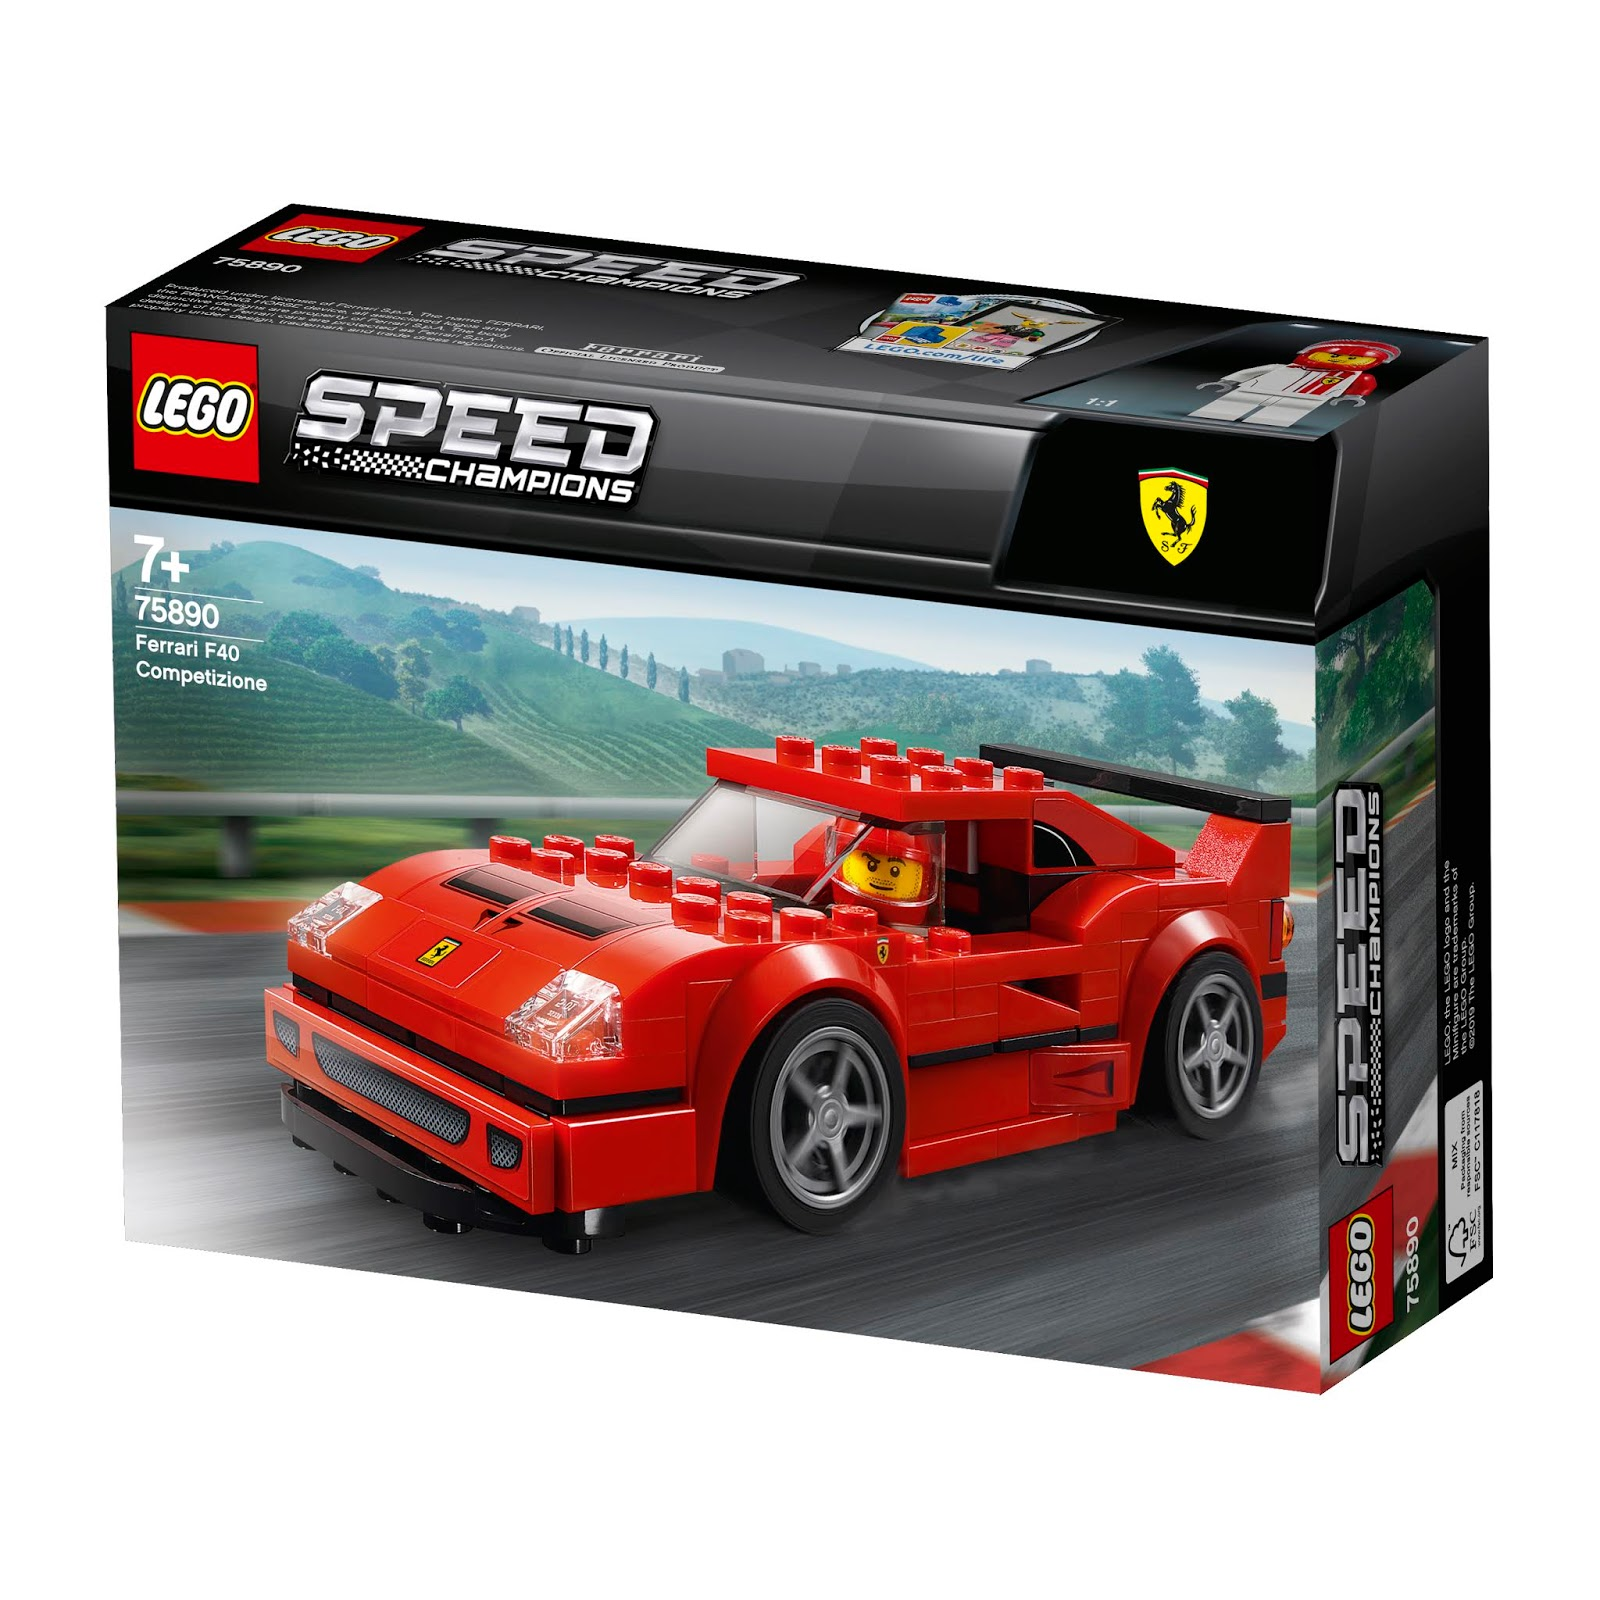 detoyz shop new 2019 lego speed champions set official. Black Bedroom Furniture Sets. Home Design Ideas